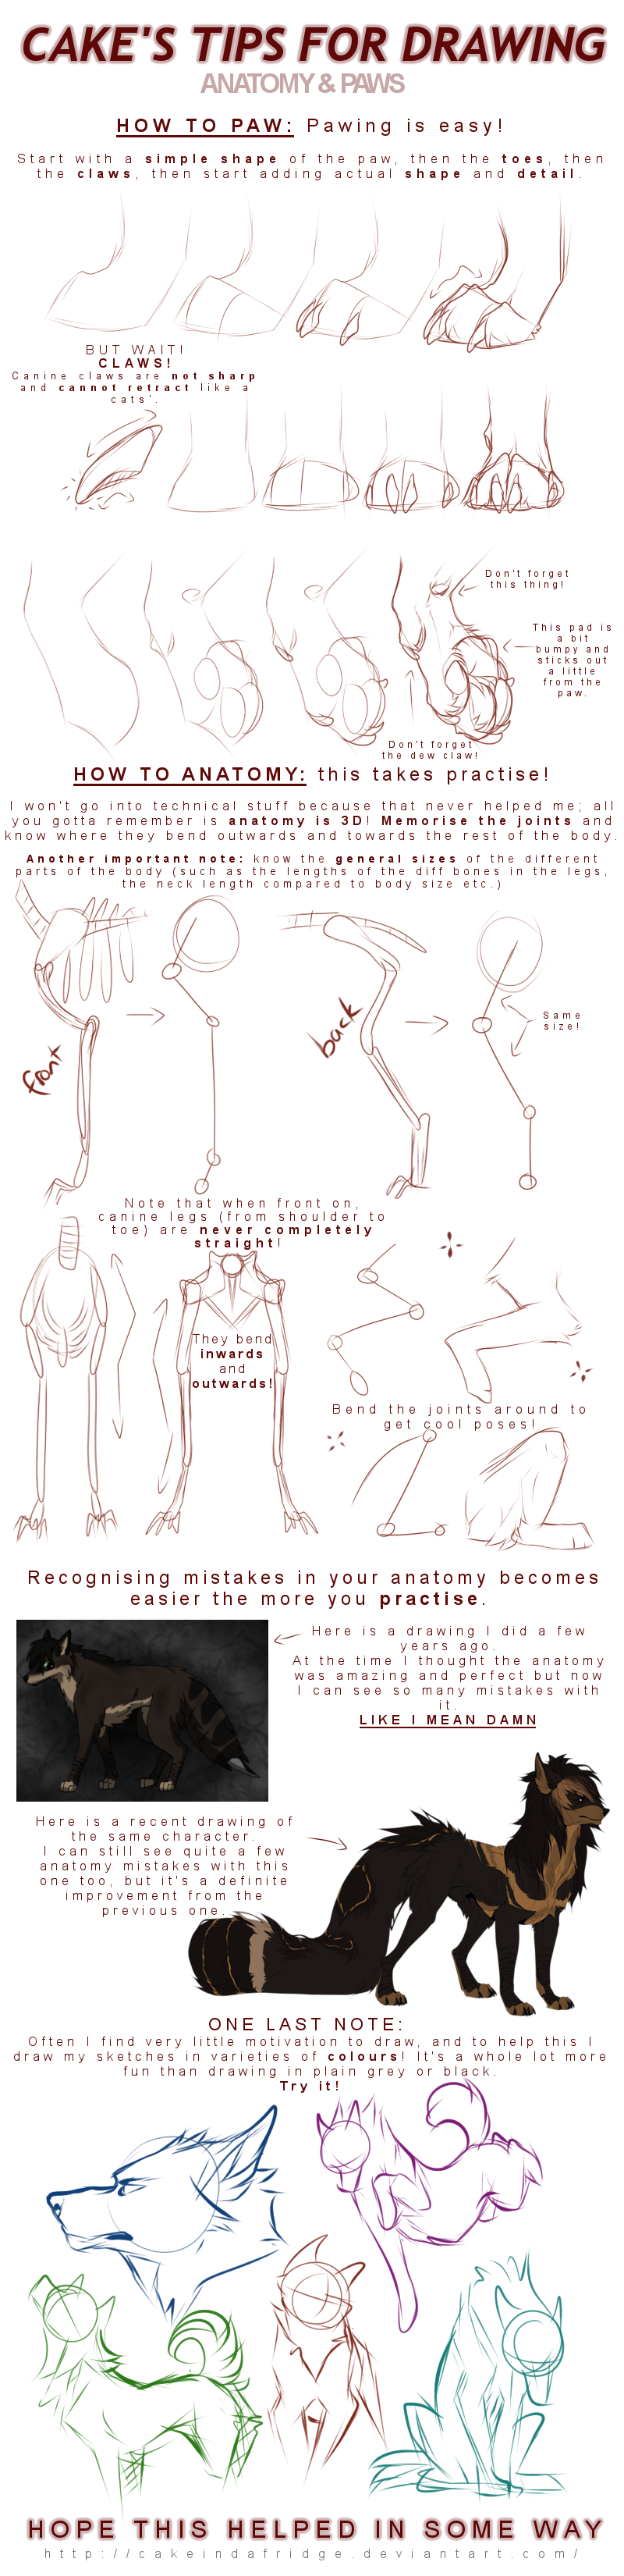 tutorial|Cake\'s tips for drawing: PAWS + ANATOMY by Cakeindafridge ...